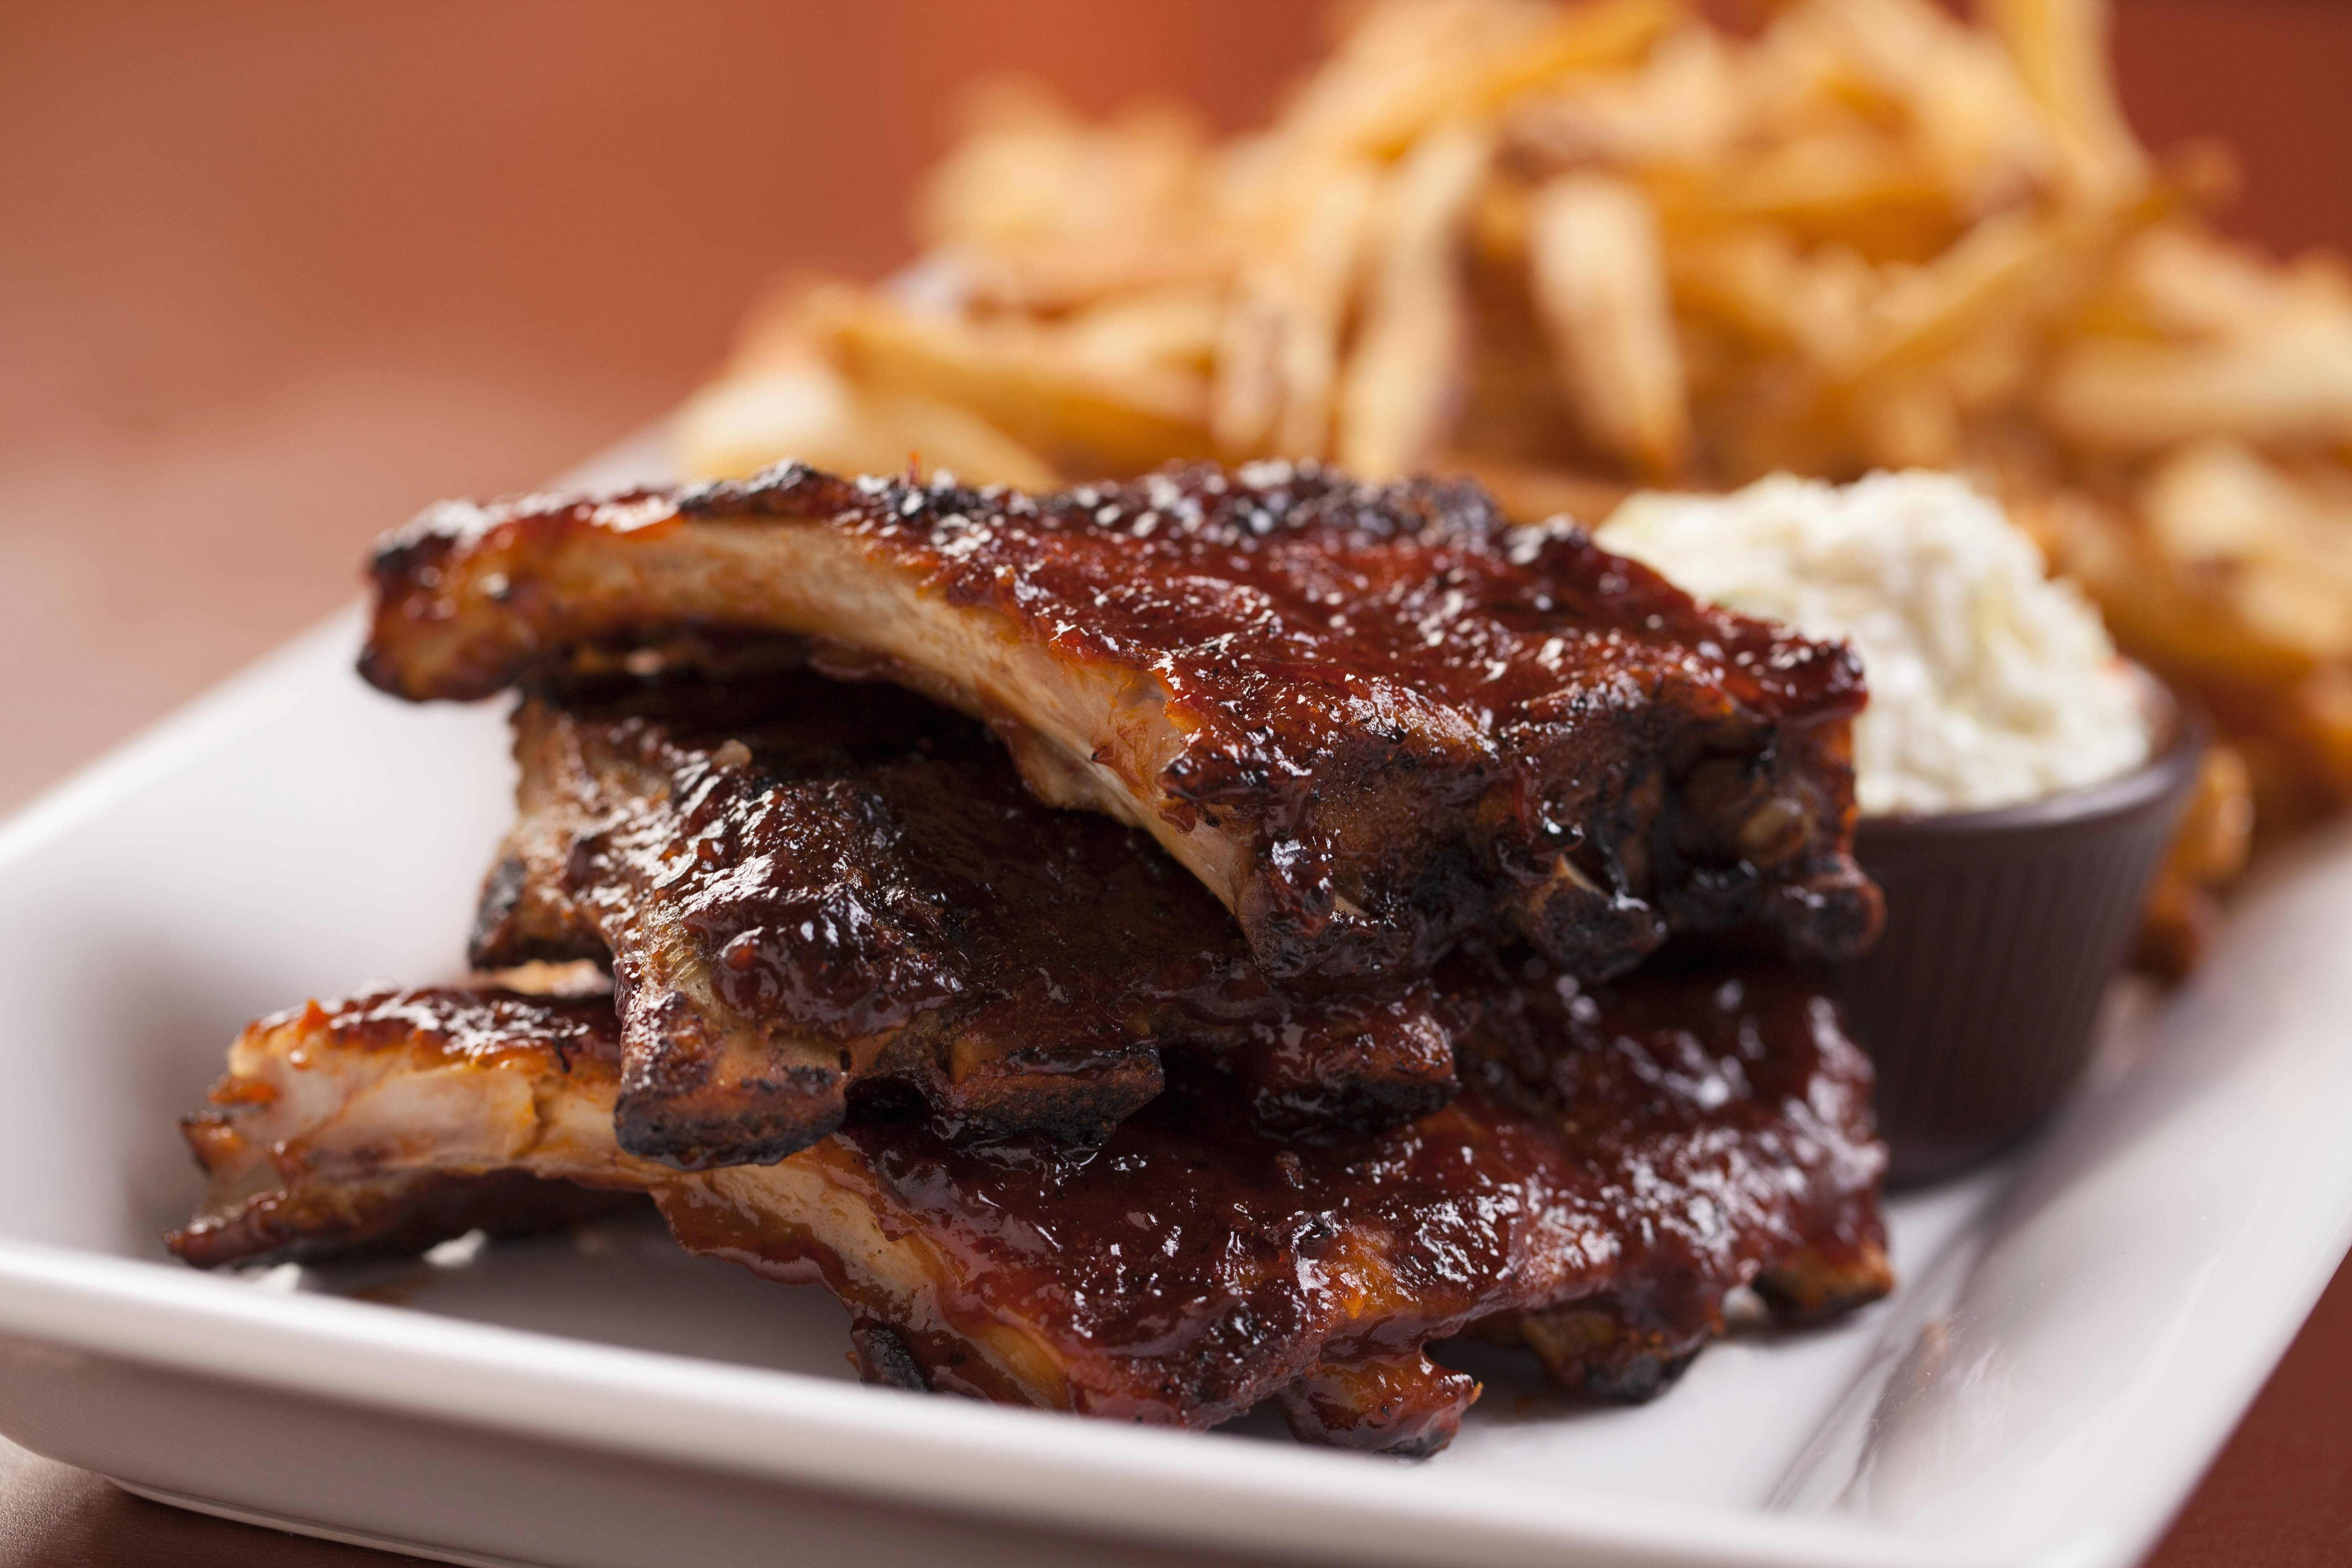 Stonewood Alehouse celebrates Memorial Day with a ribs special from 11 a.m. to 9 p.m. Monday.